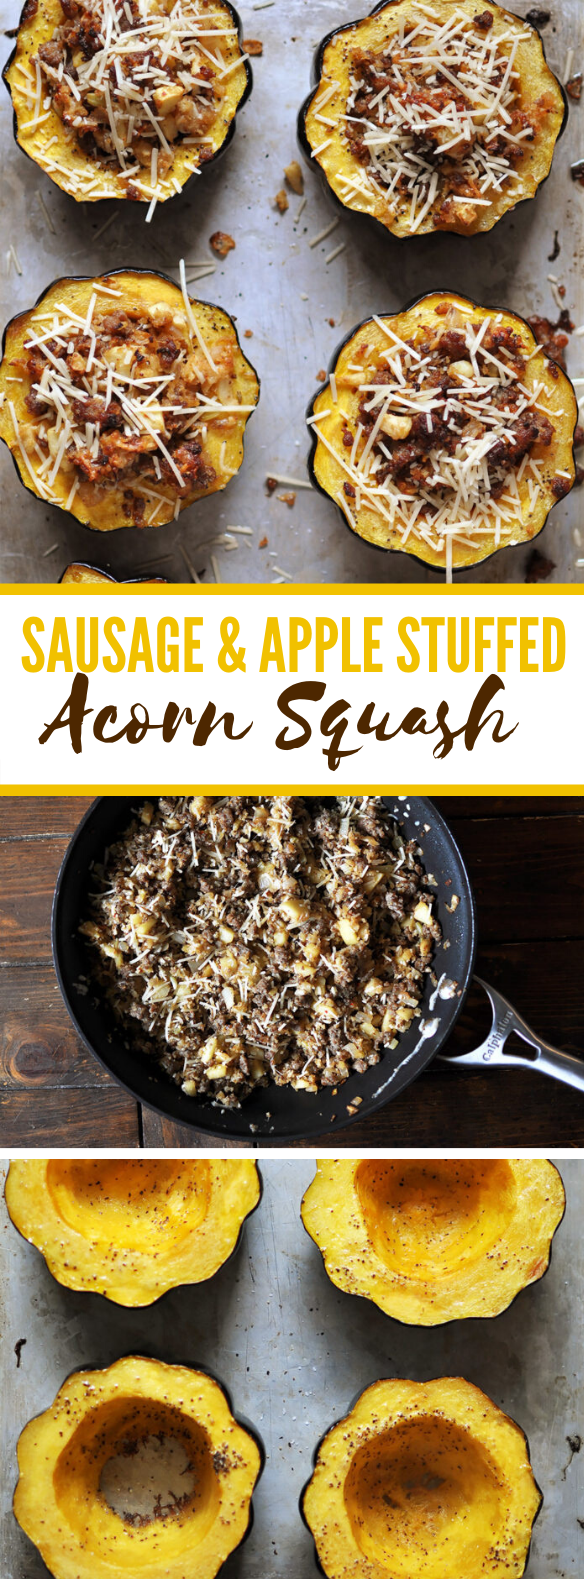 Sausage and Apple Stuffed Acorn Squash #appetizers #familyrecipes